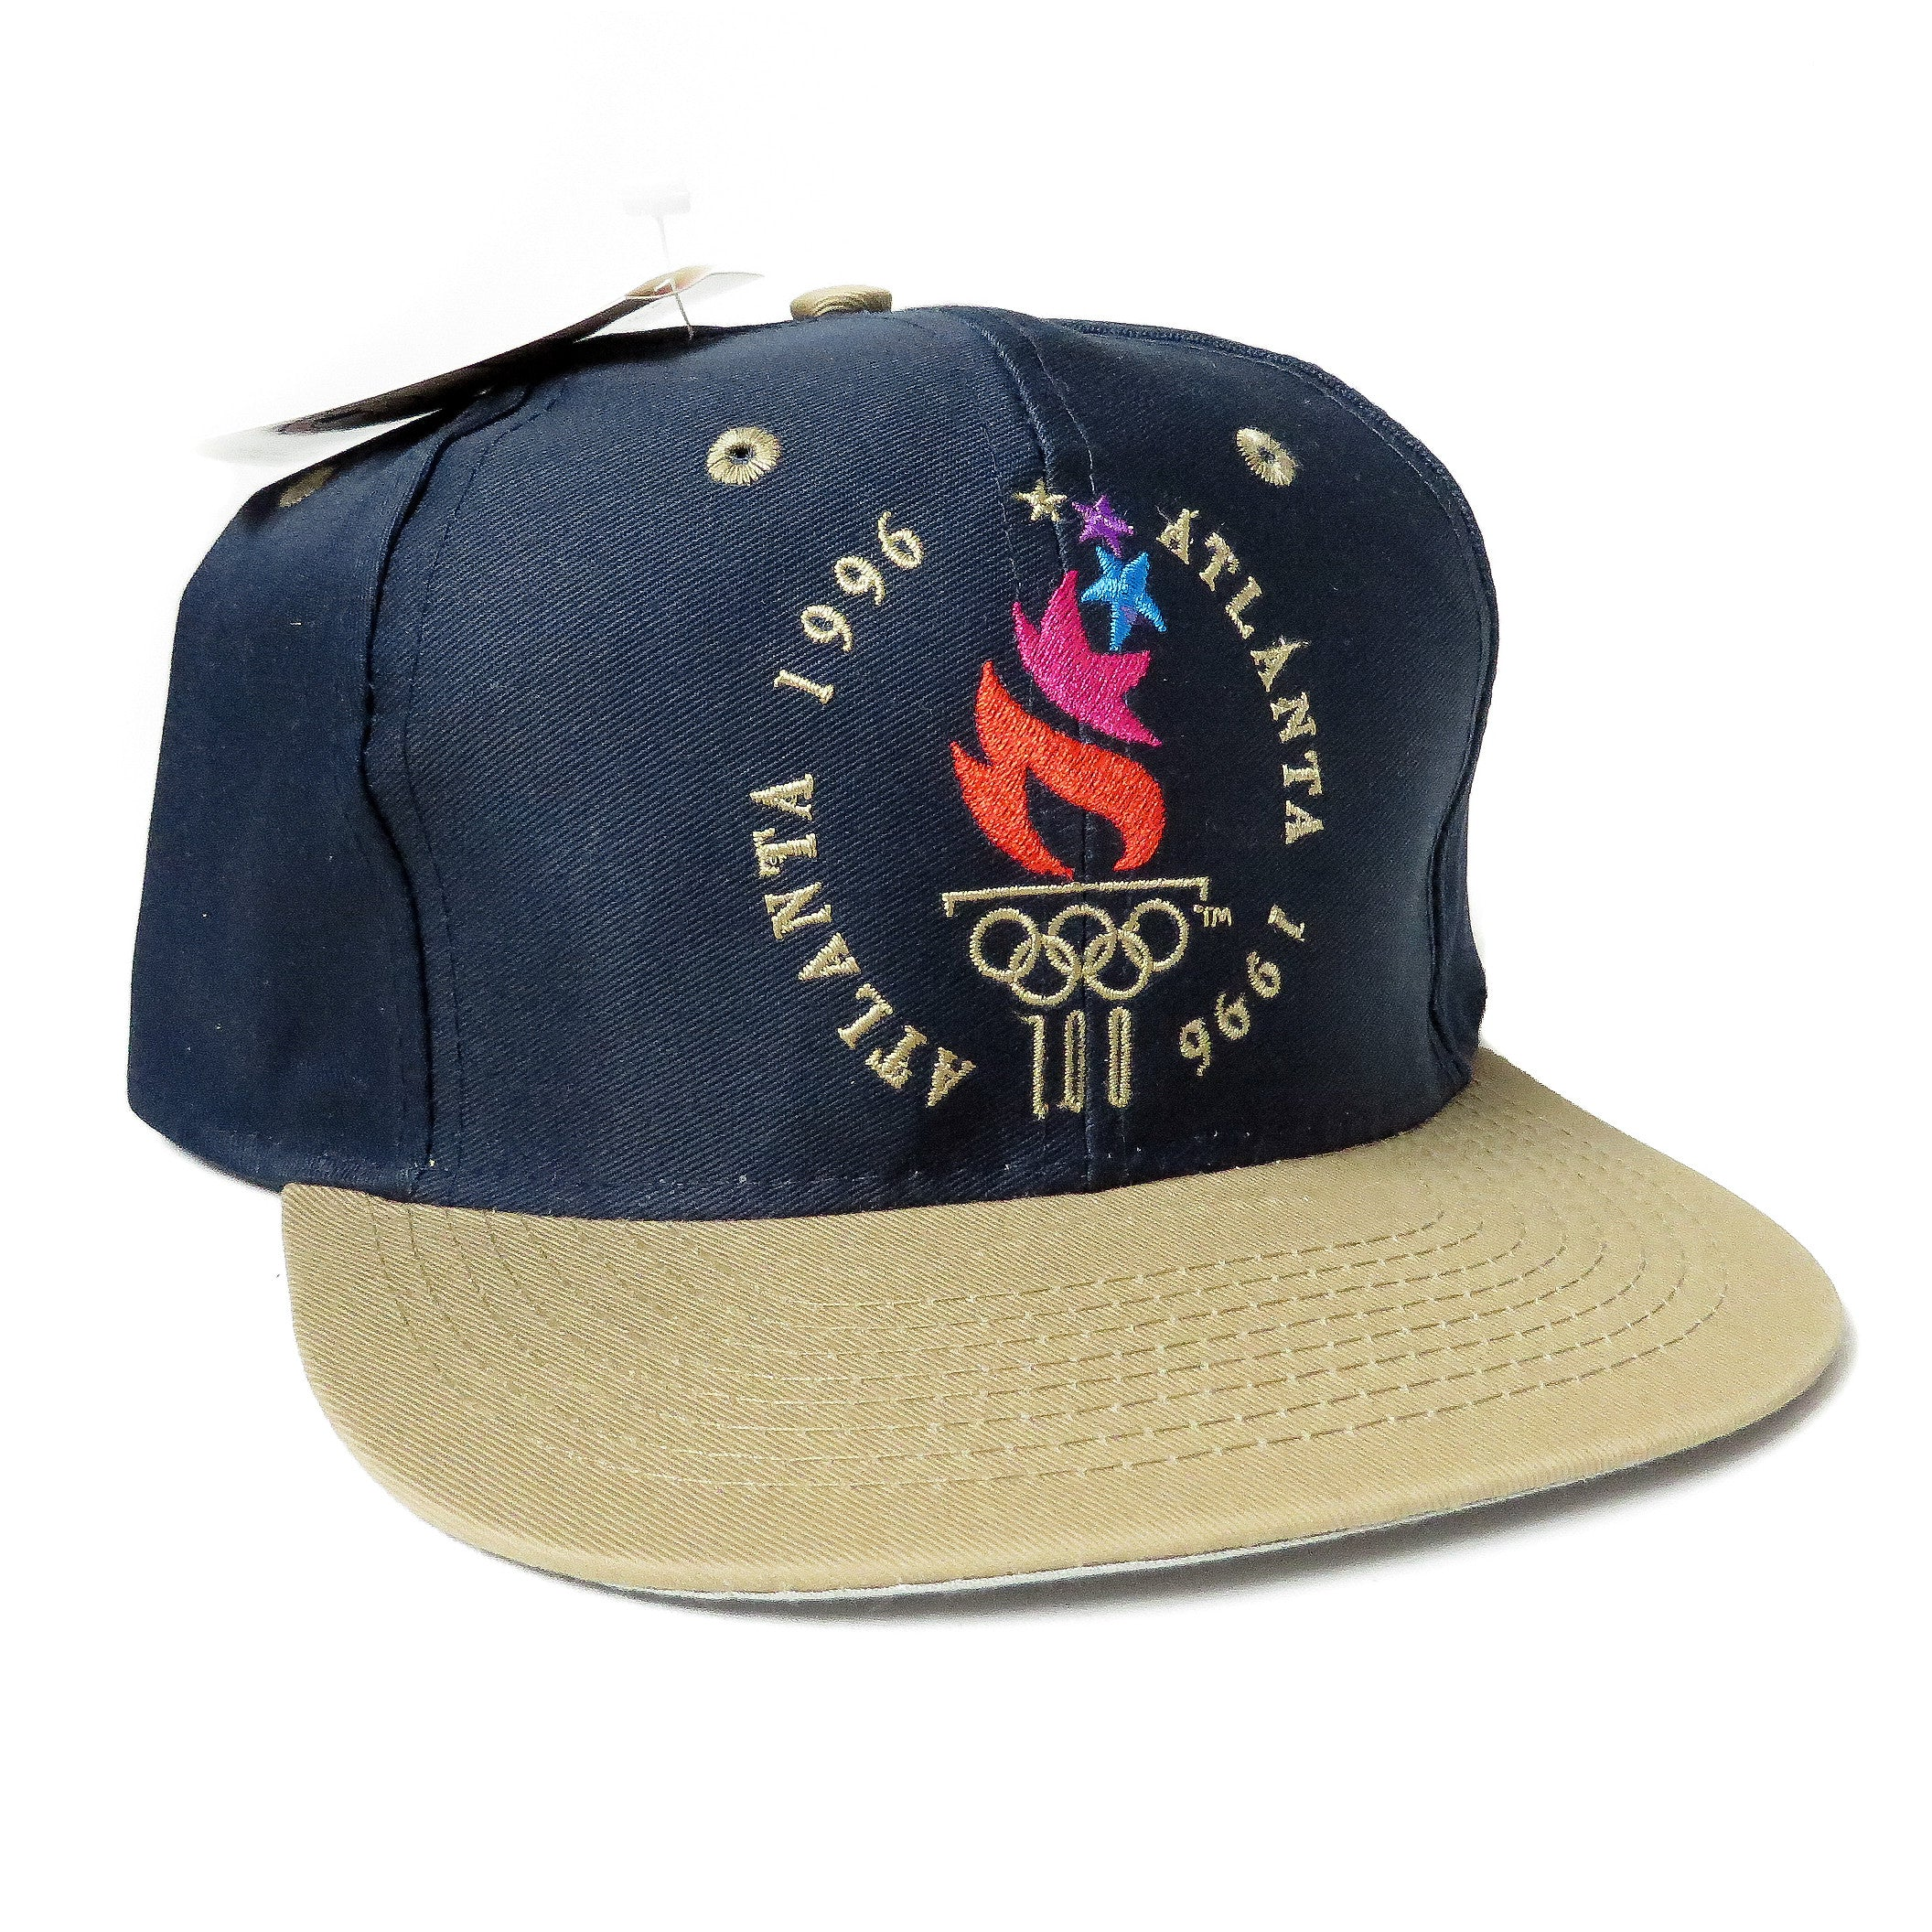 Vintage Atlanta 1996 Summer Games Snapback Hat